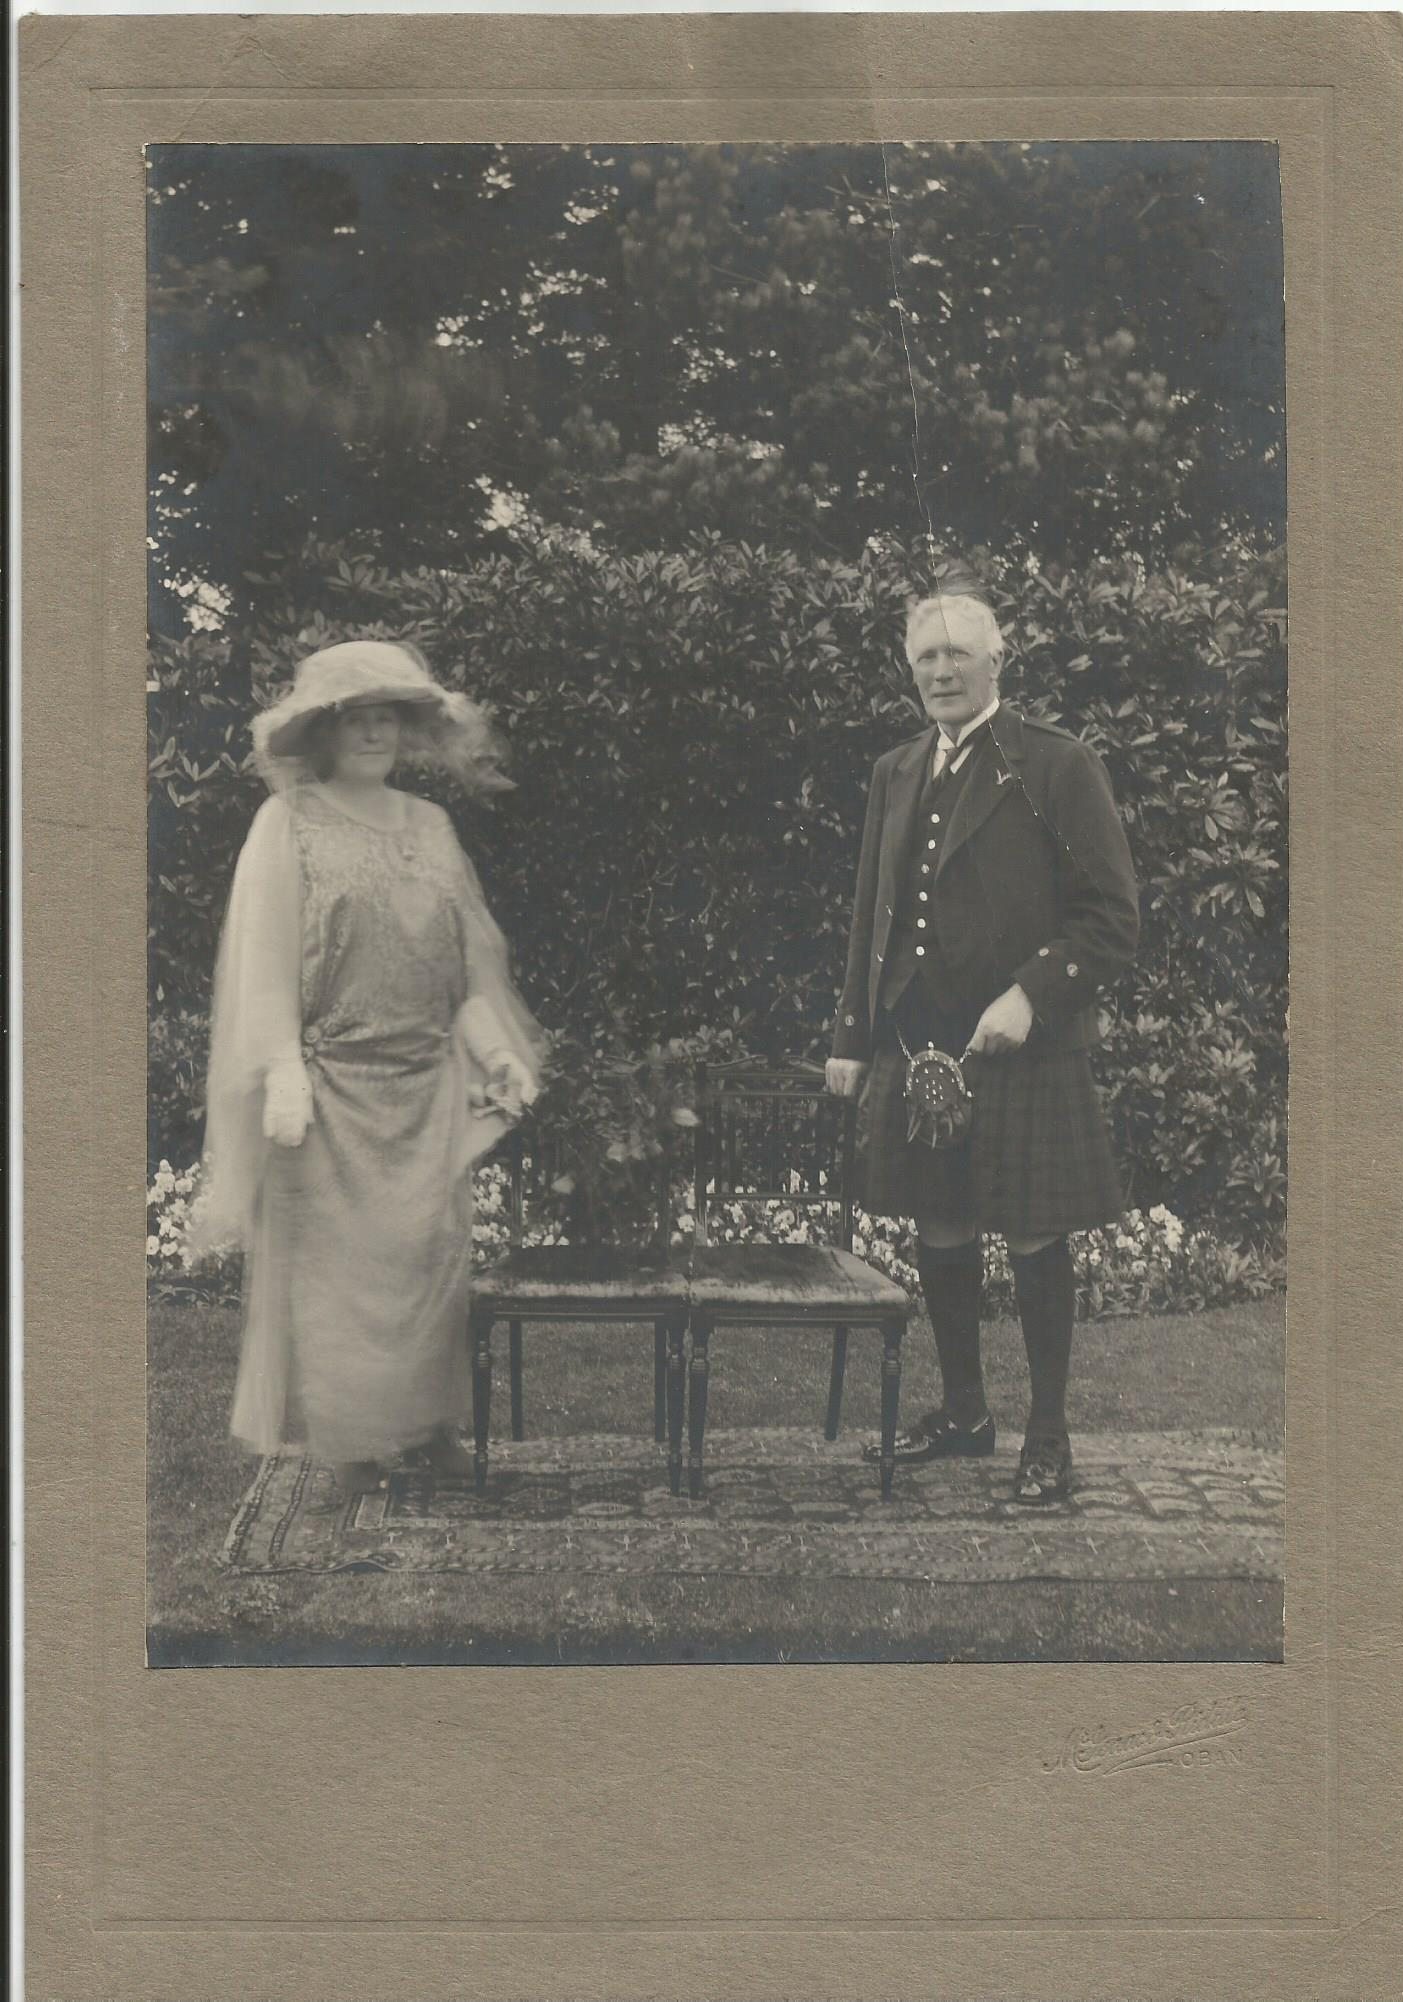 Alexander Mackay and his wife Edith